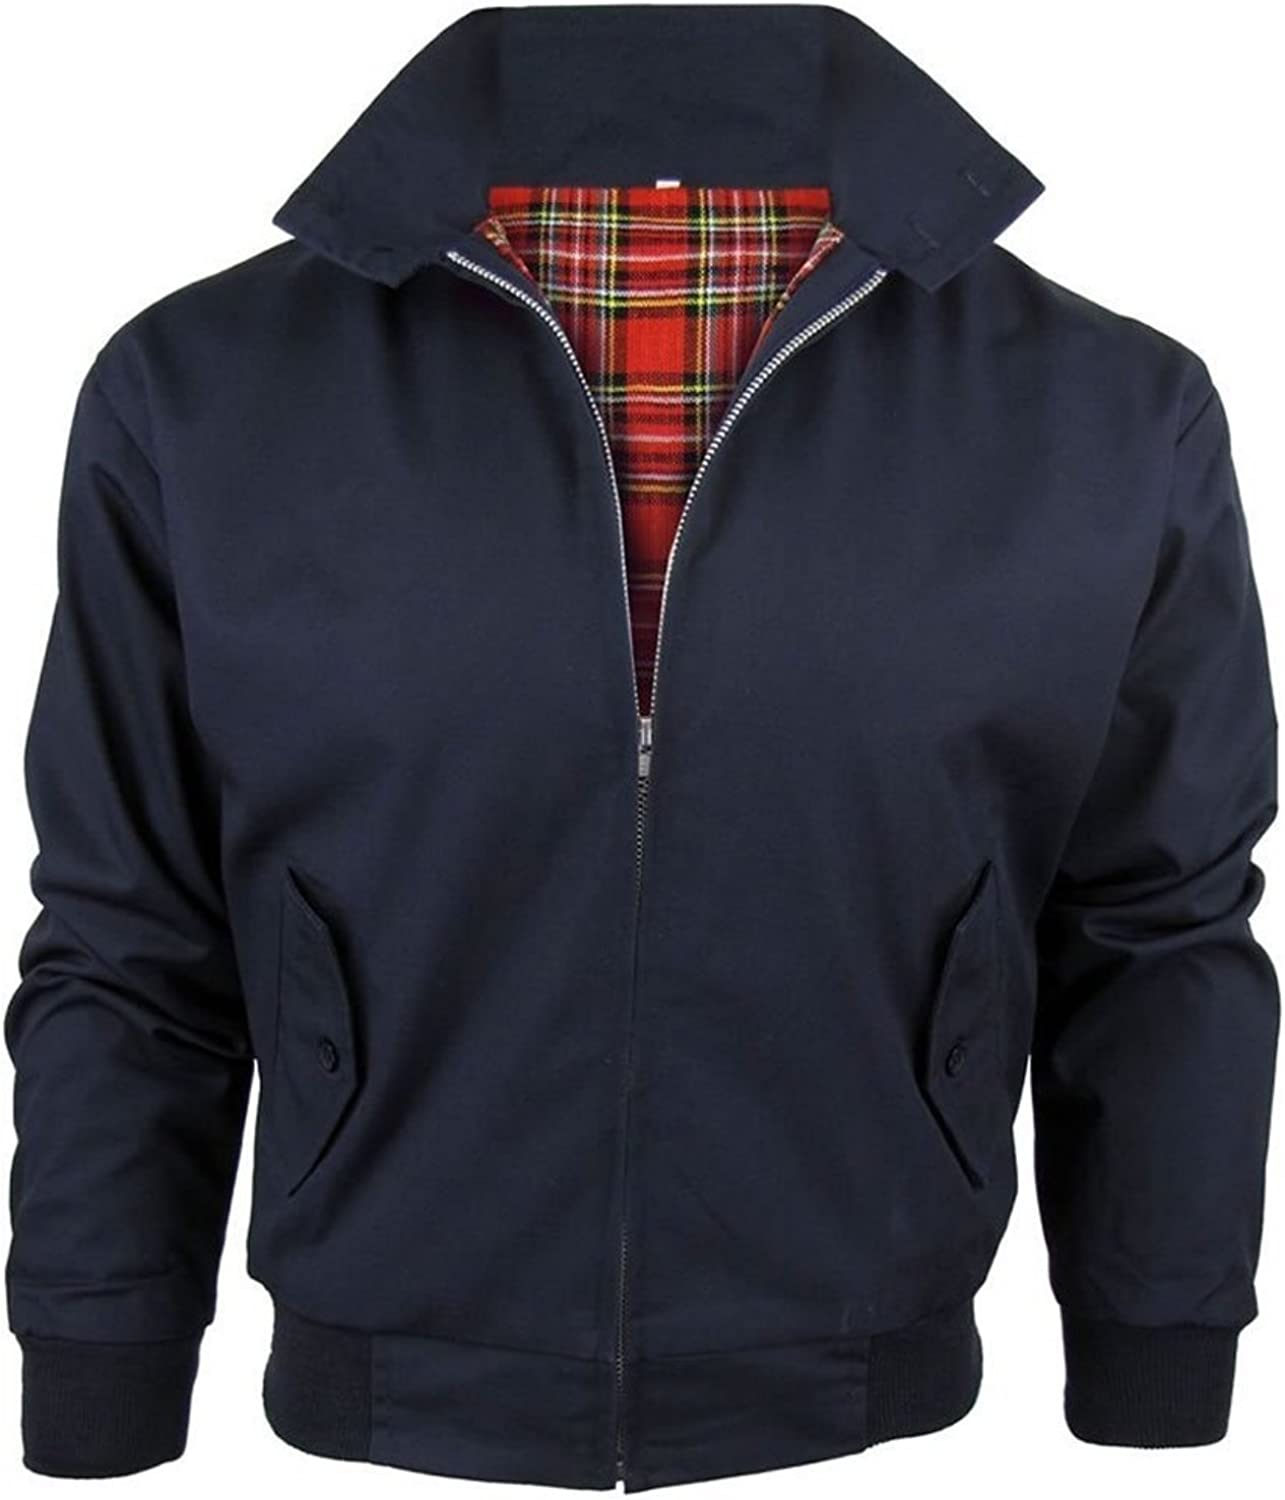 Global Attire Vintage Childrens//Boys//Kids Classic Harrington Jacket with Tartan Lining